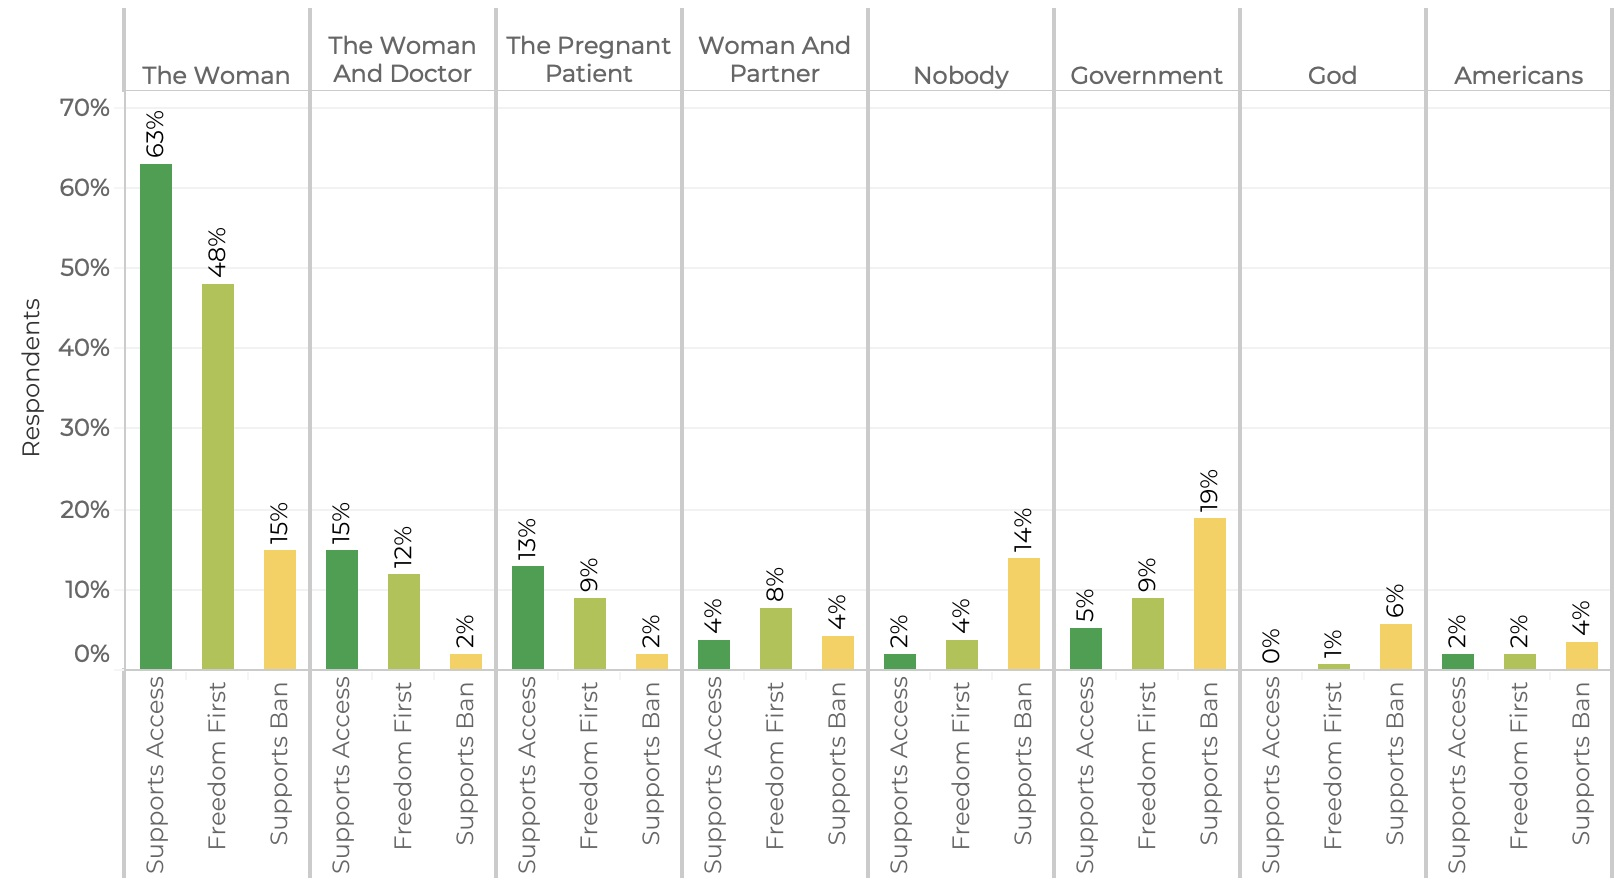 Respondents were asked in open-ended format to identify  who should decide who gets access to abortion  and text analysis was conducted to identify these top themes, presented by position on the issue.